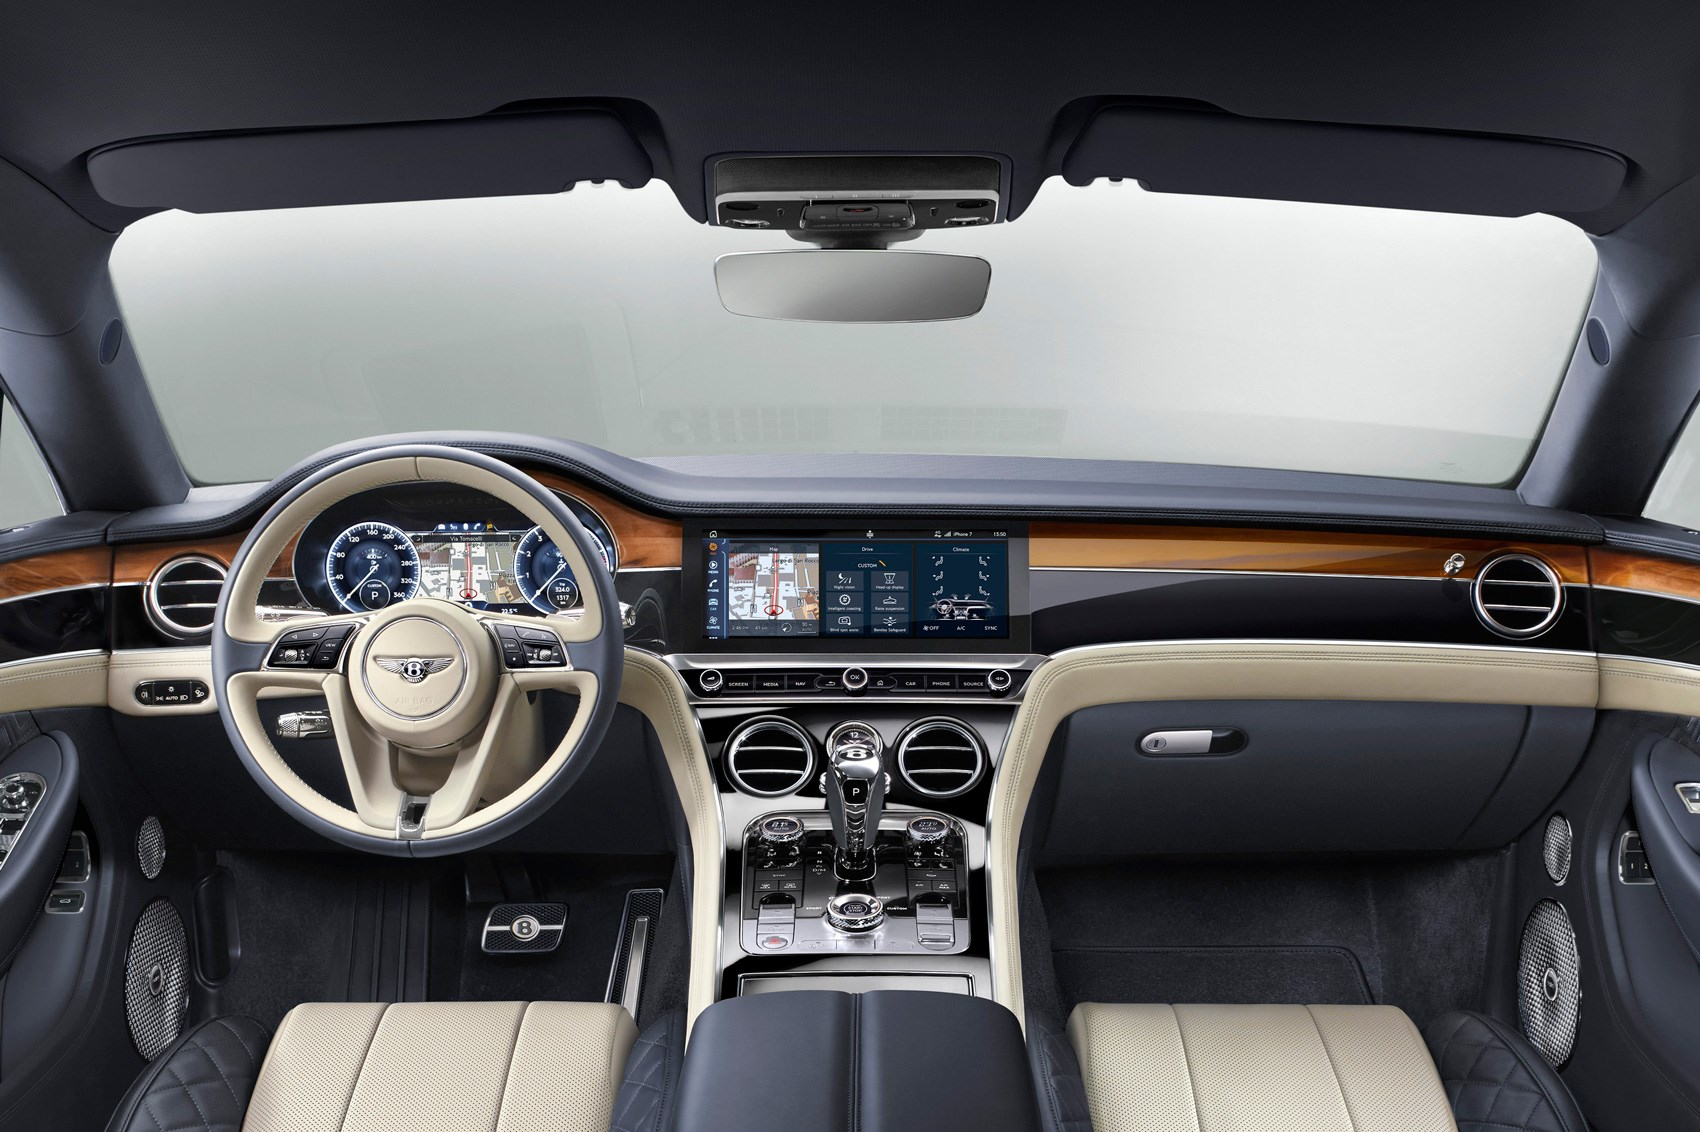 price bentley spur door continental sedan carbuyer review reviews flying saloon